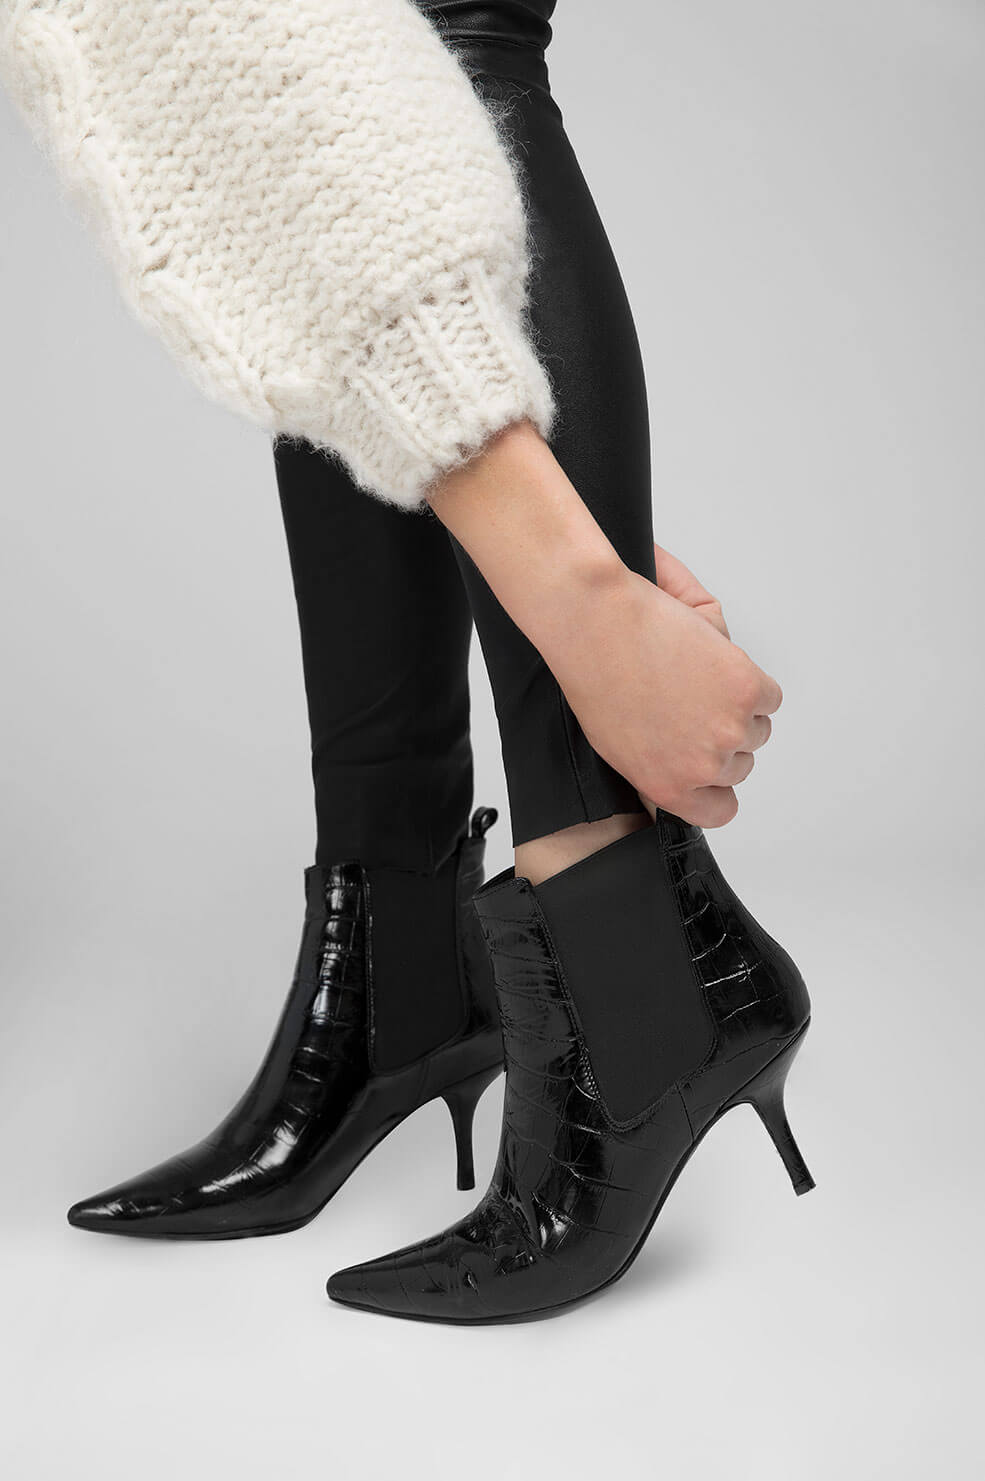 ANINE BING STEVIE BOOT - BLACK CROCO